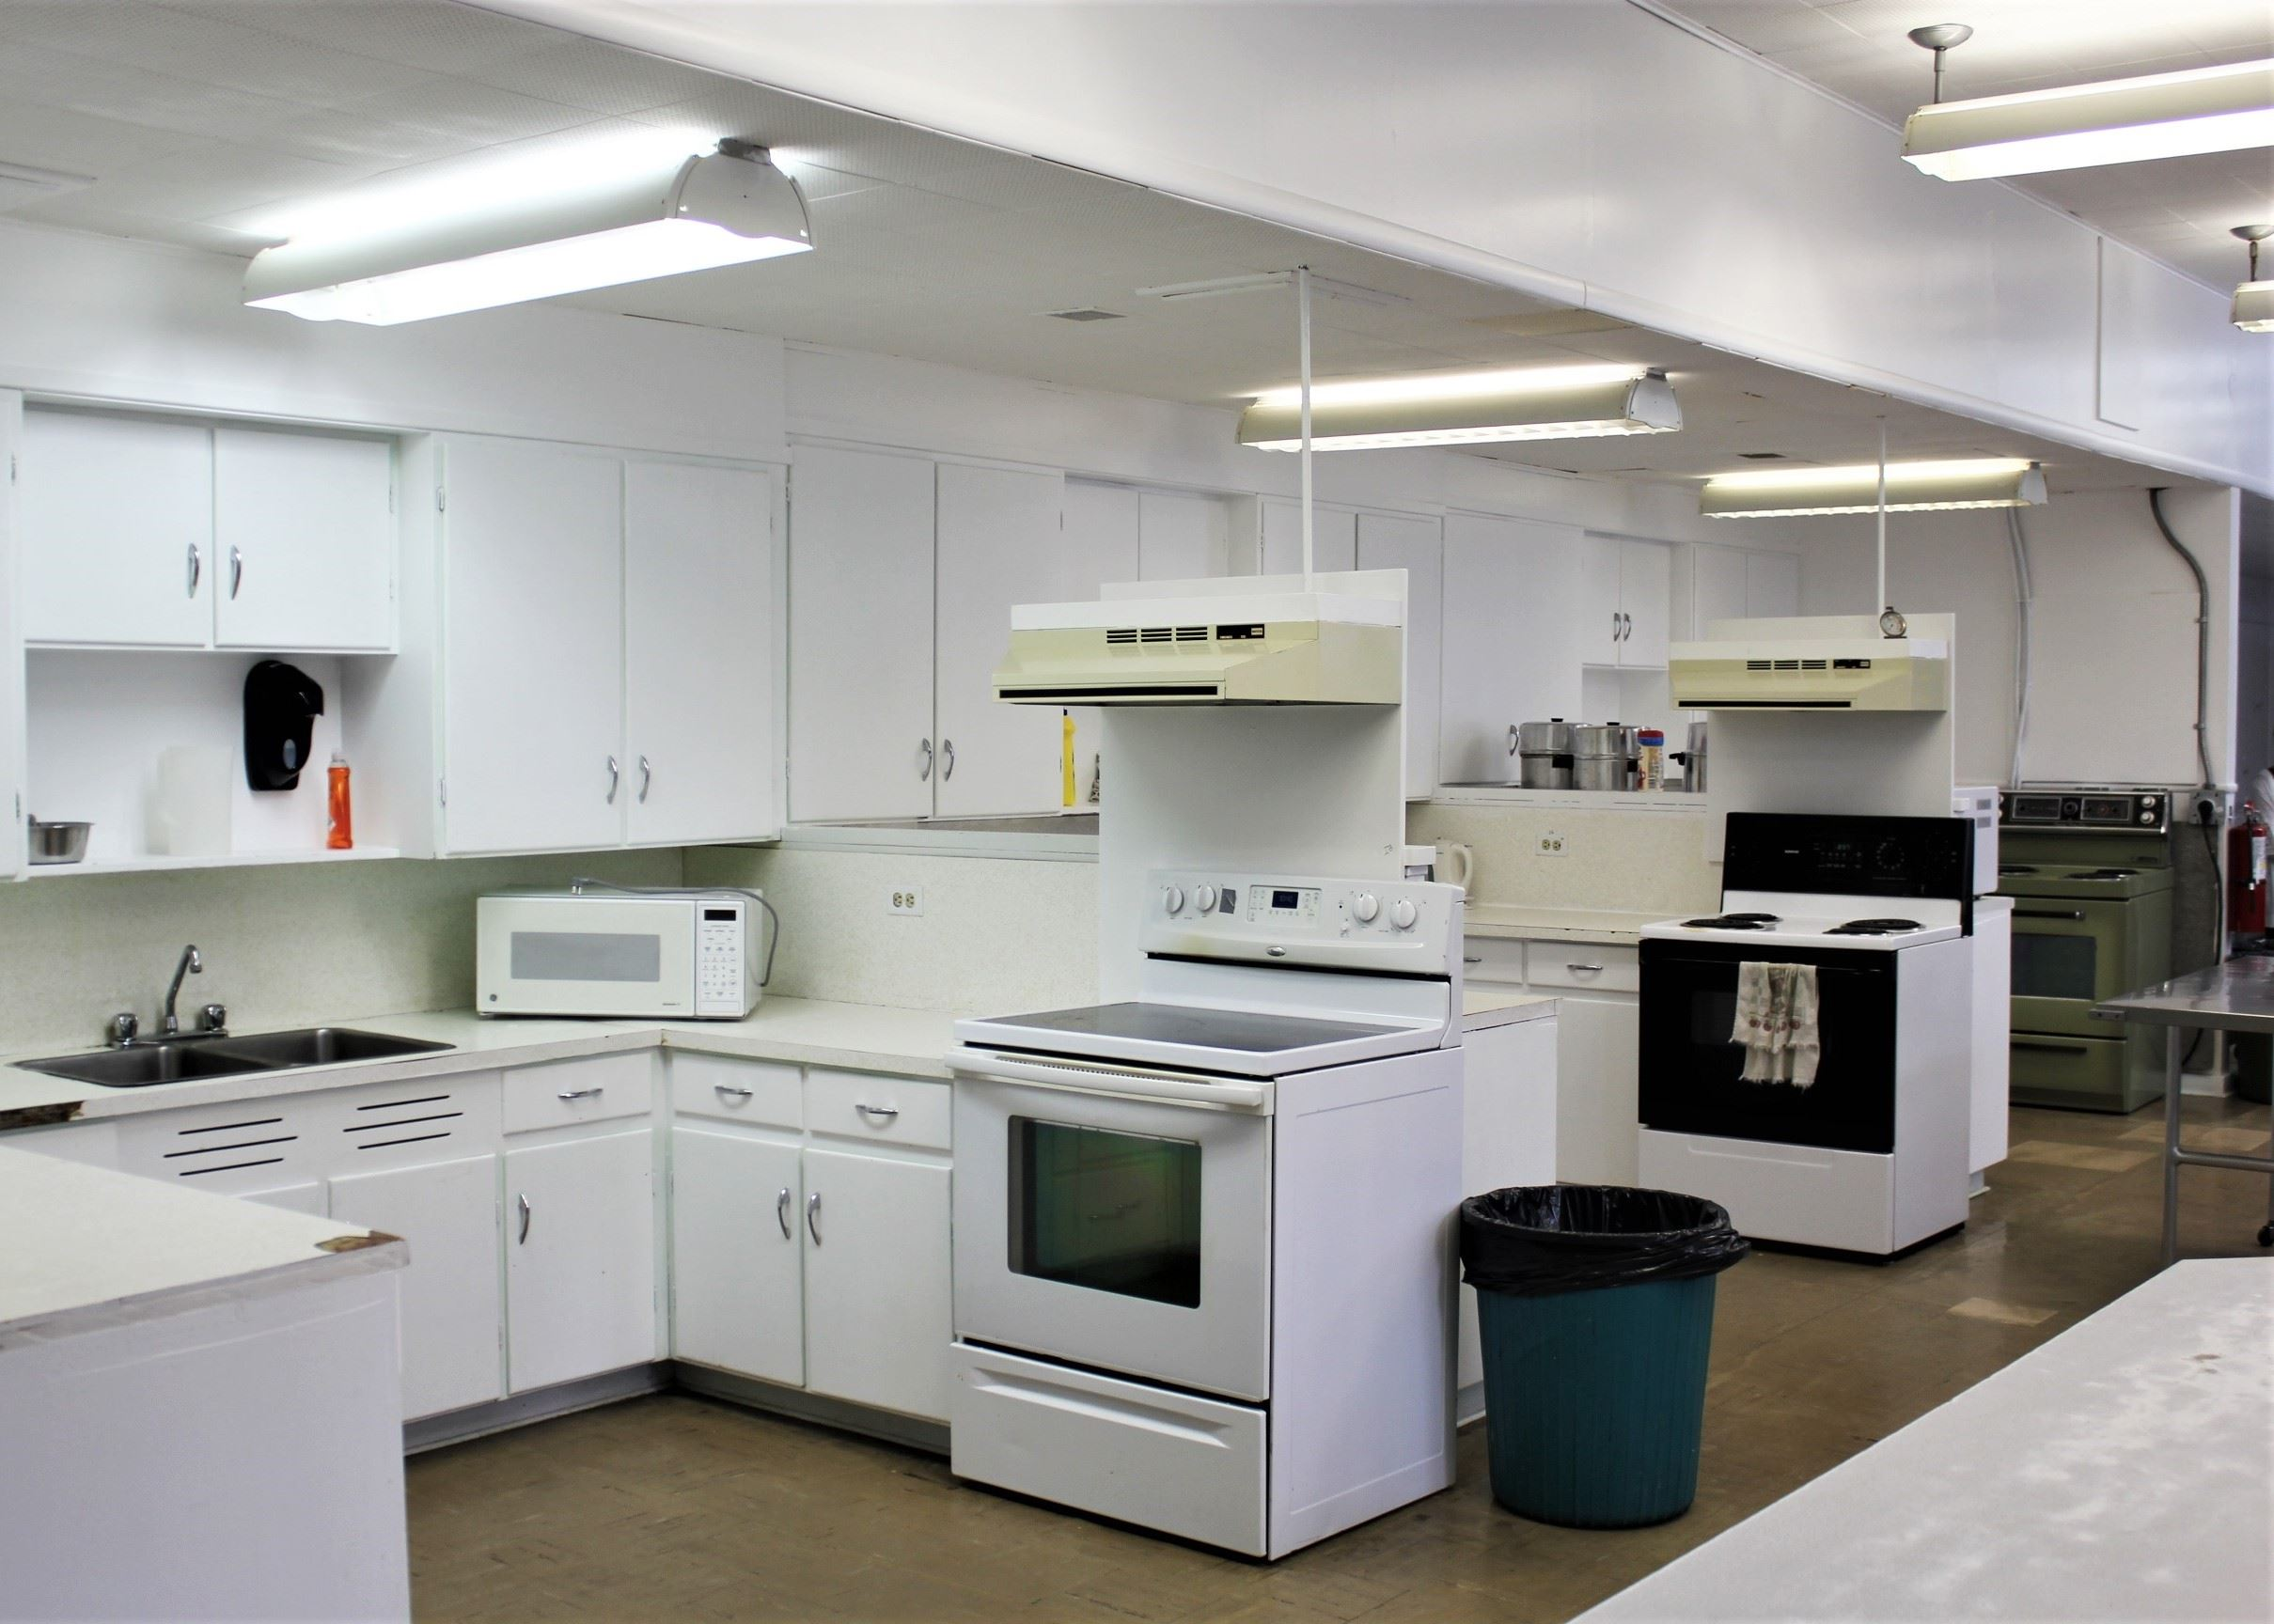 Image of kitchen in Civic Centre